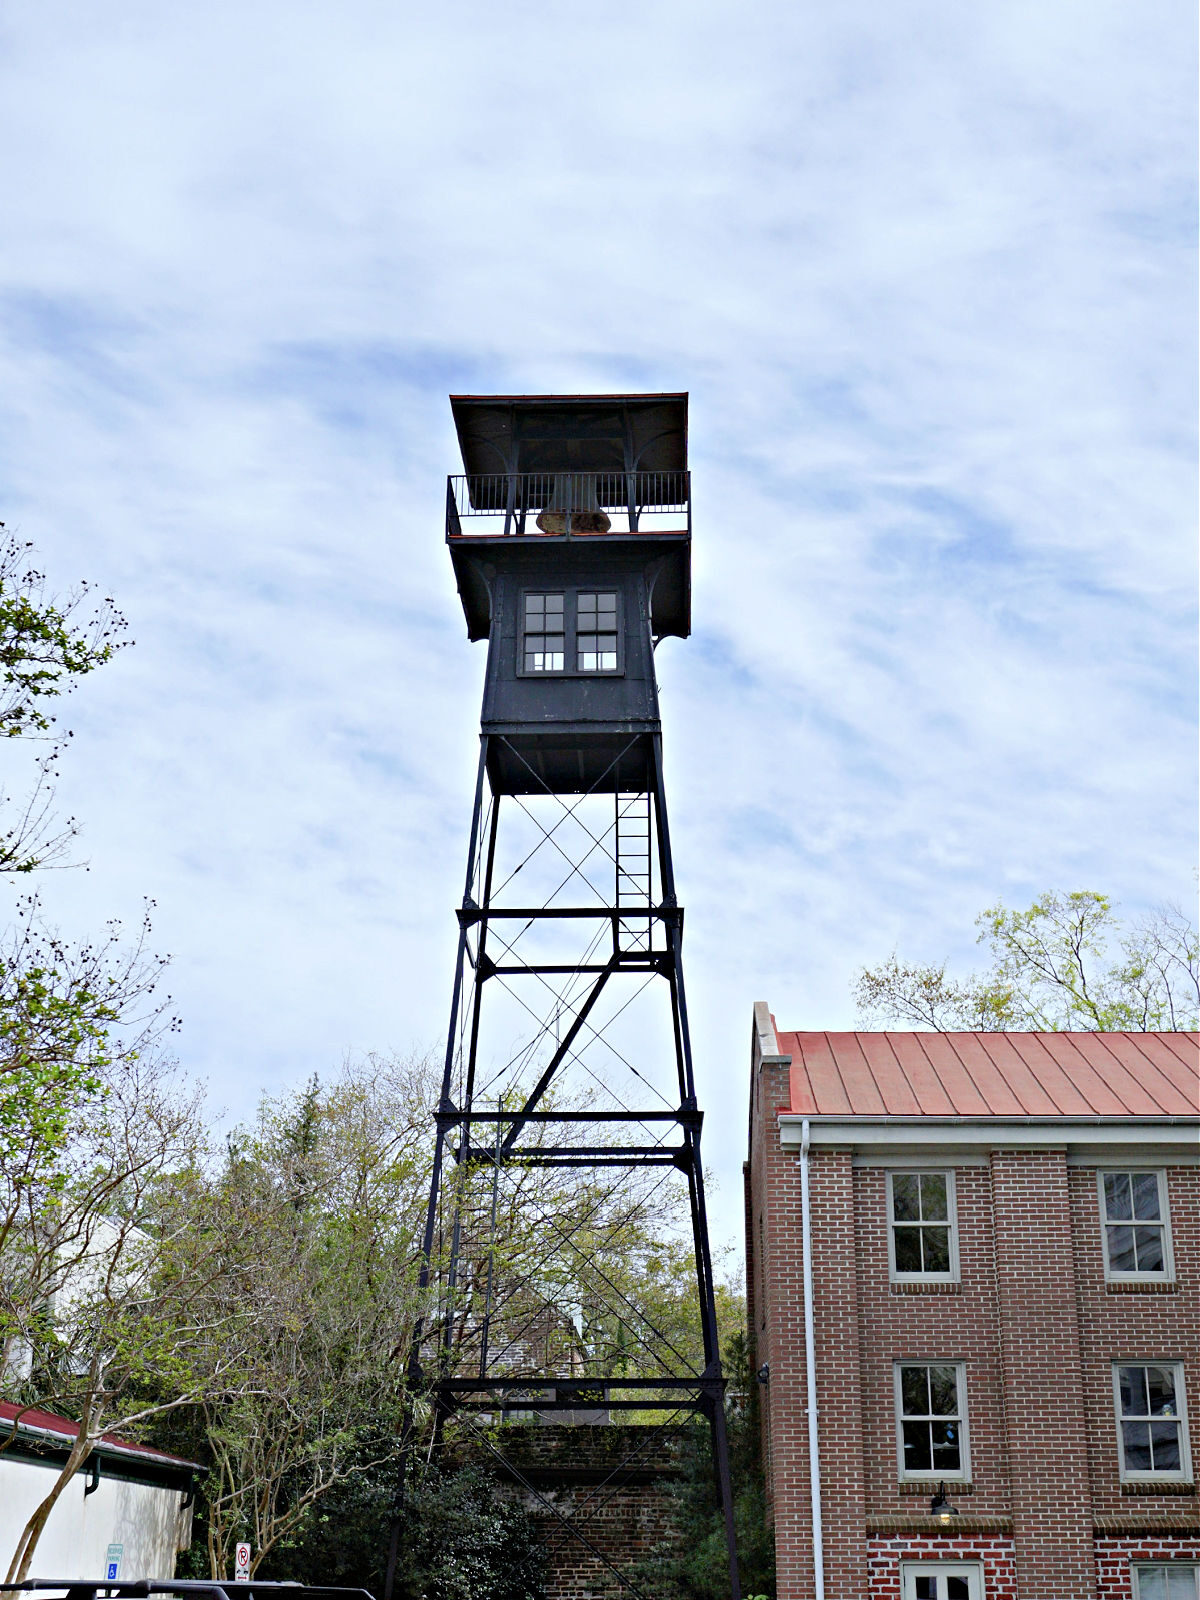 Fire tower next to a building.